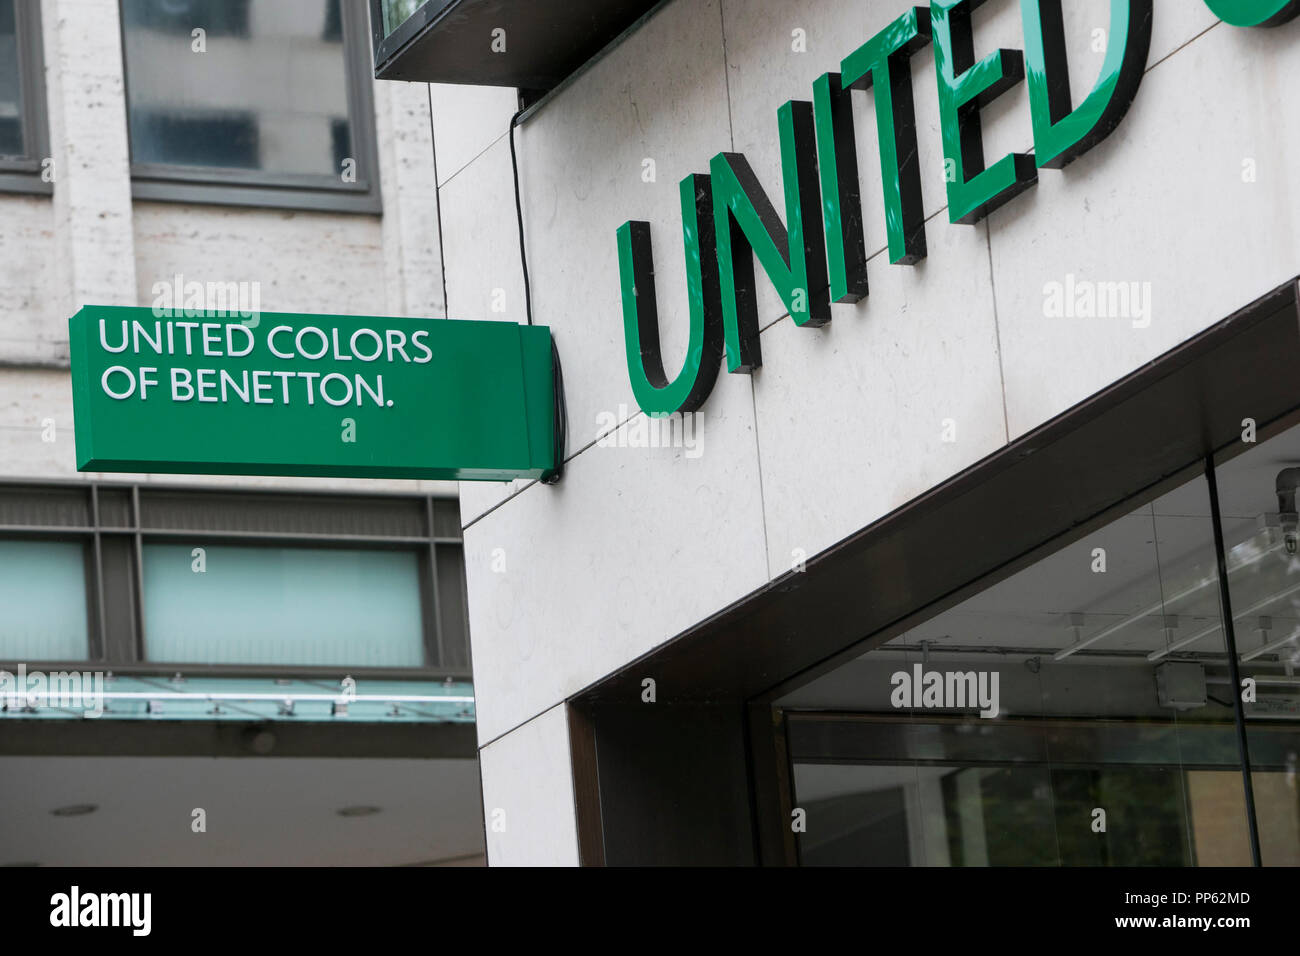 A logo sign outside of a United Colors of Benetton retail store in Munich, Germany, on September 2, 2018. - Stock Image